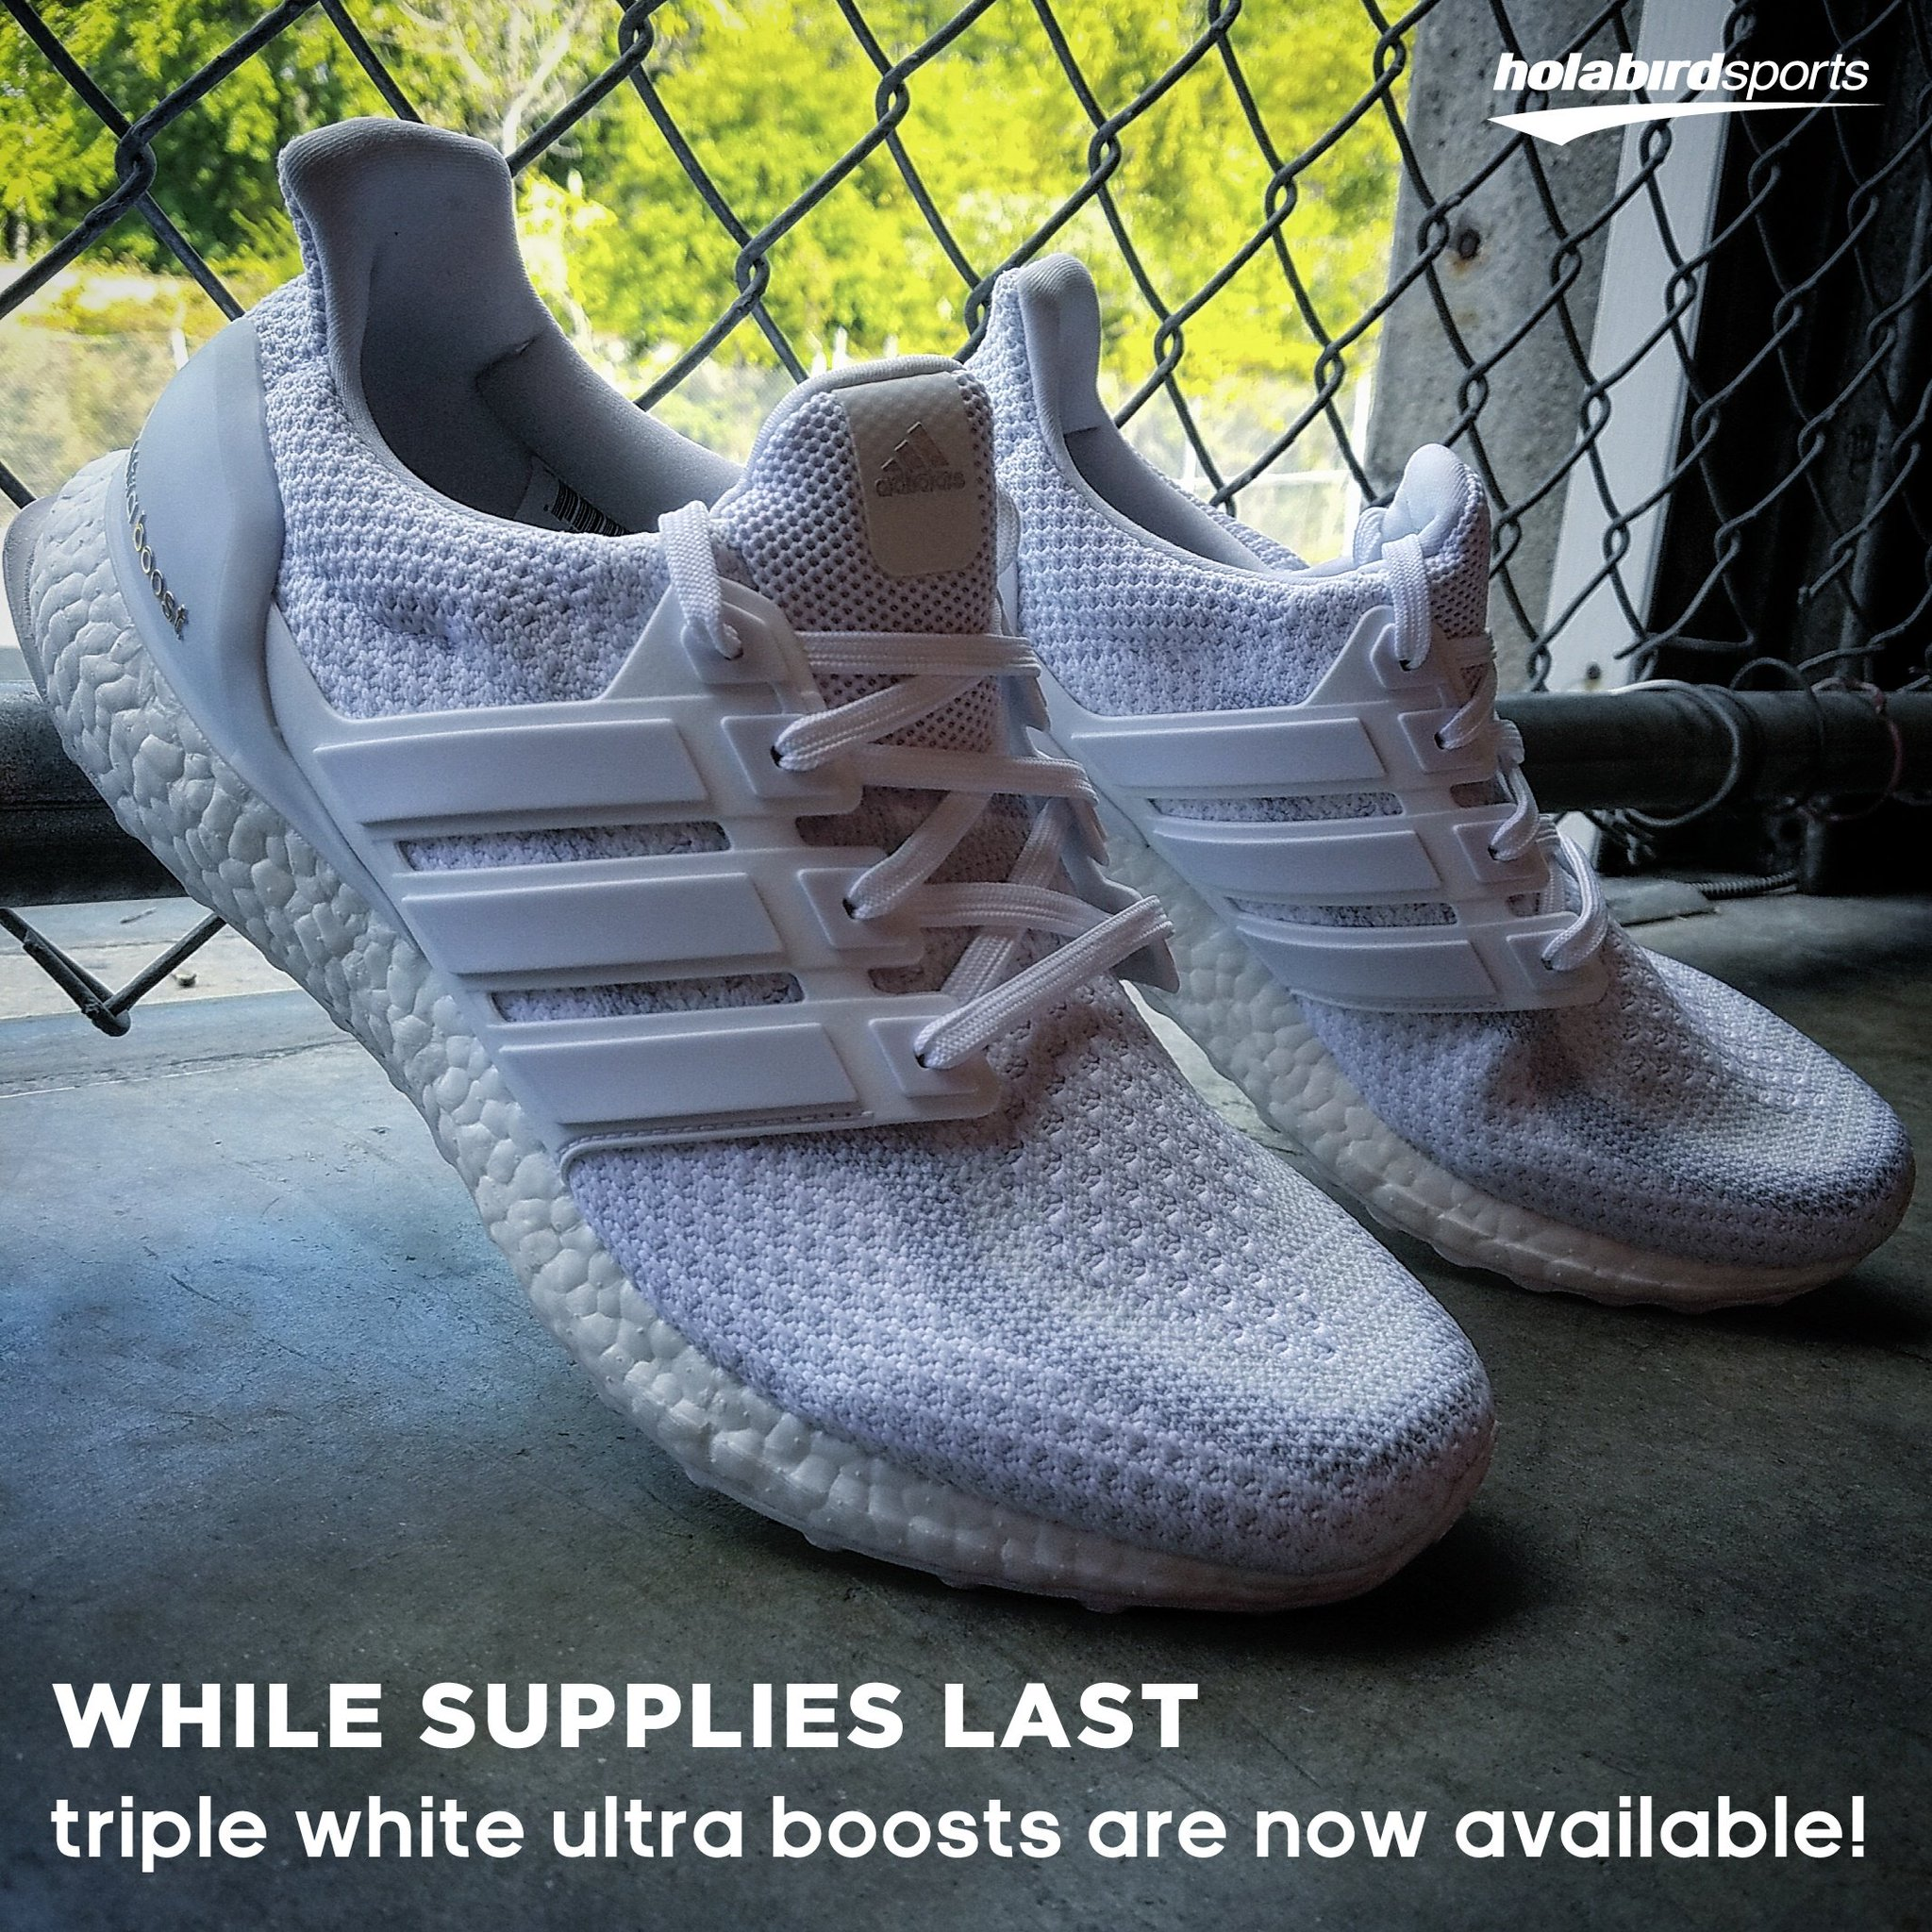 56ac7855da85a ... holabird sports on twitter while supplies last the triplewhite adidas  ultra boosts are now available